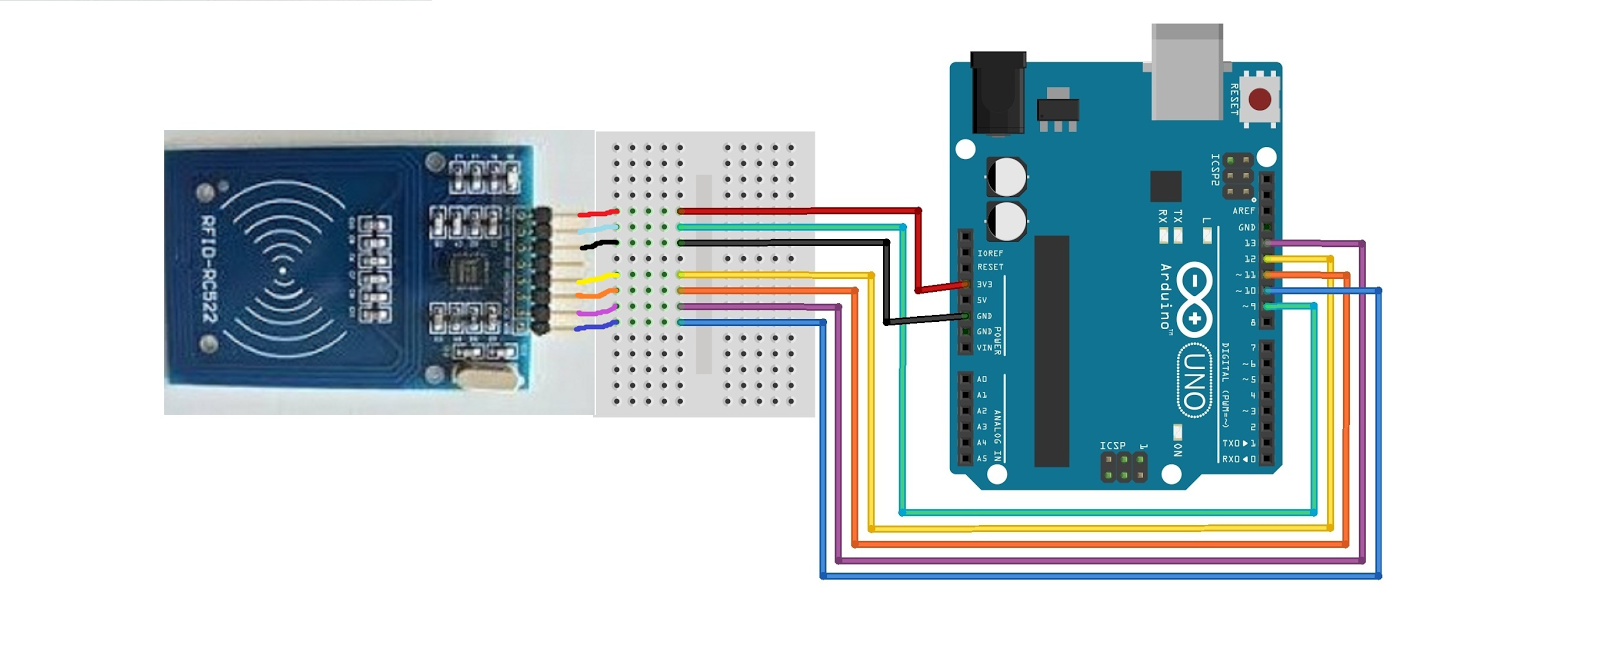 Security Access Using RFID Reader - Arduino Project Hub